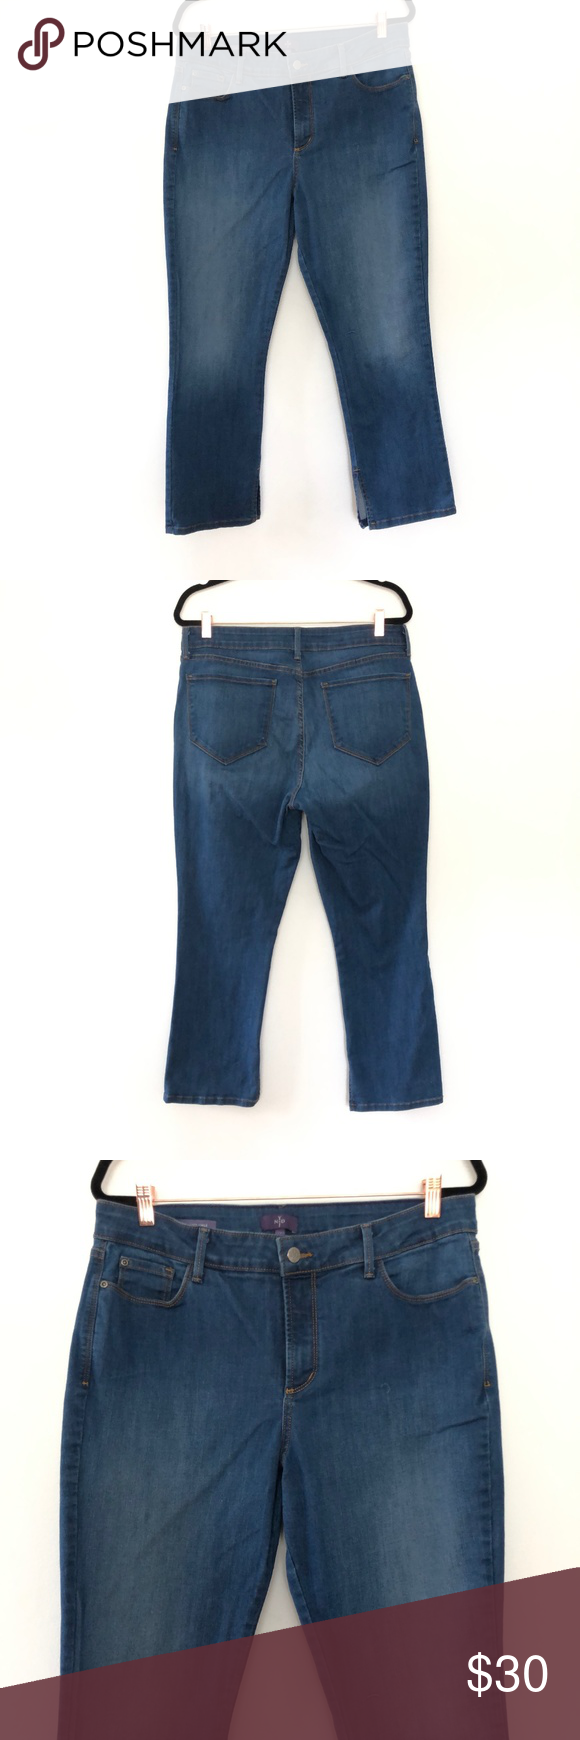 7b047b7ccce5d NYDJ Ira Relaxed Ankle Jeans NYDJ Not Your Daughters Jeans Womens Ira  Relaxed Ankle Jean Plus